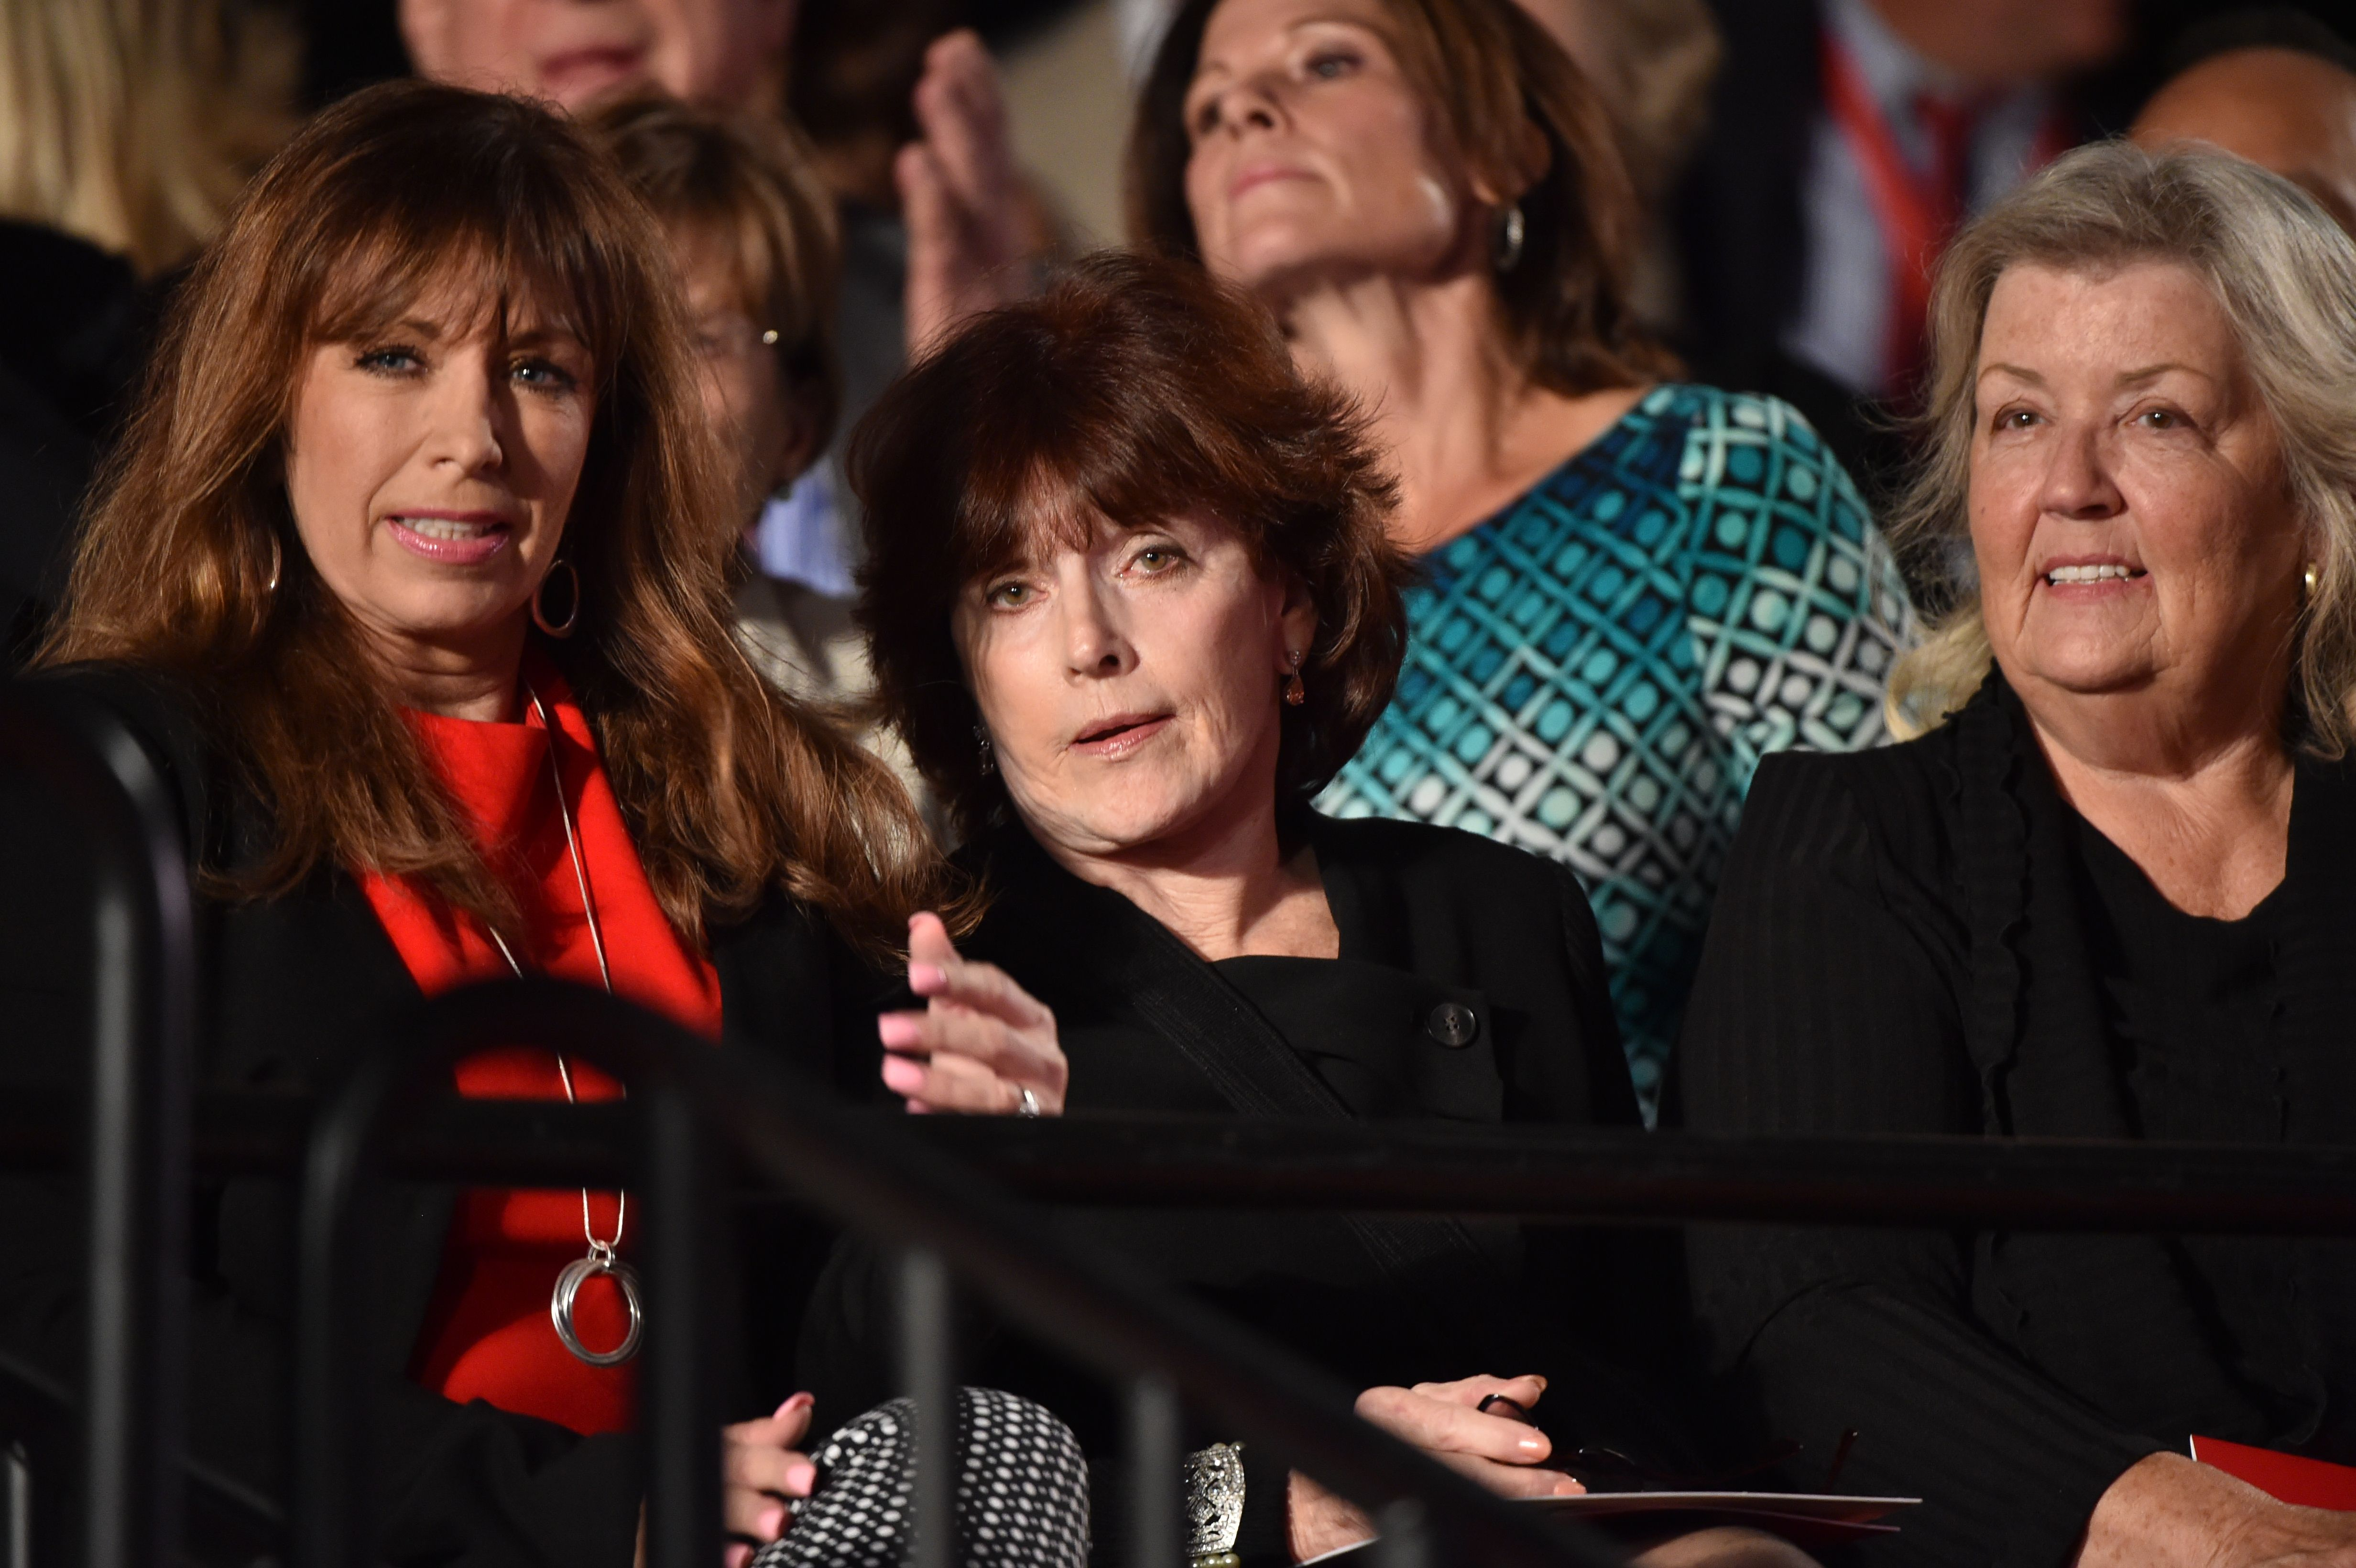 Paula Jones (L), Kathleen Willey (C) and Juanita Broaddrick (R) are seated for the second presidential debate between Republican presidential nominee Donald Trump and Democratic contender Hillary Clinton at Washington University in St. Louis, Missouri on October 9, 2016. (PAUL J. RICHARDS/AFP via Getty Images)